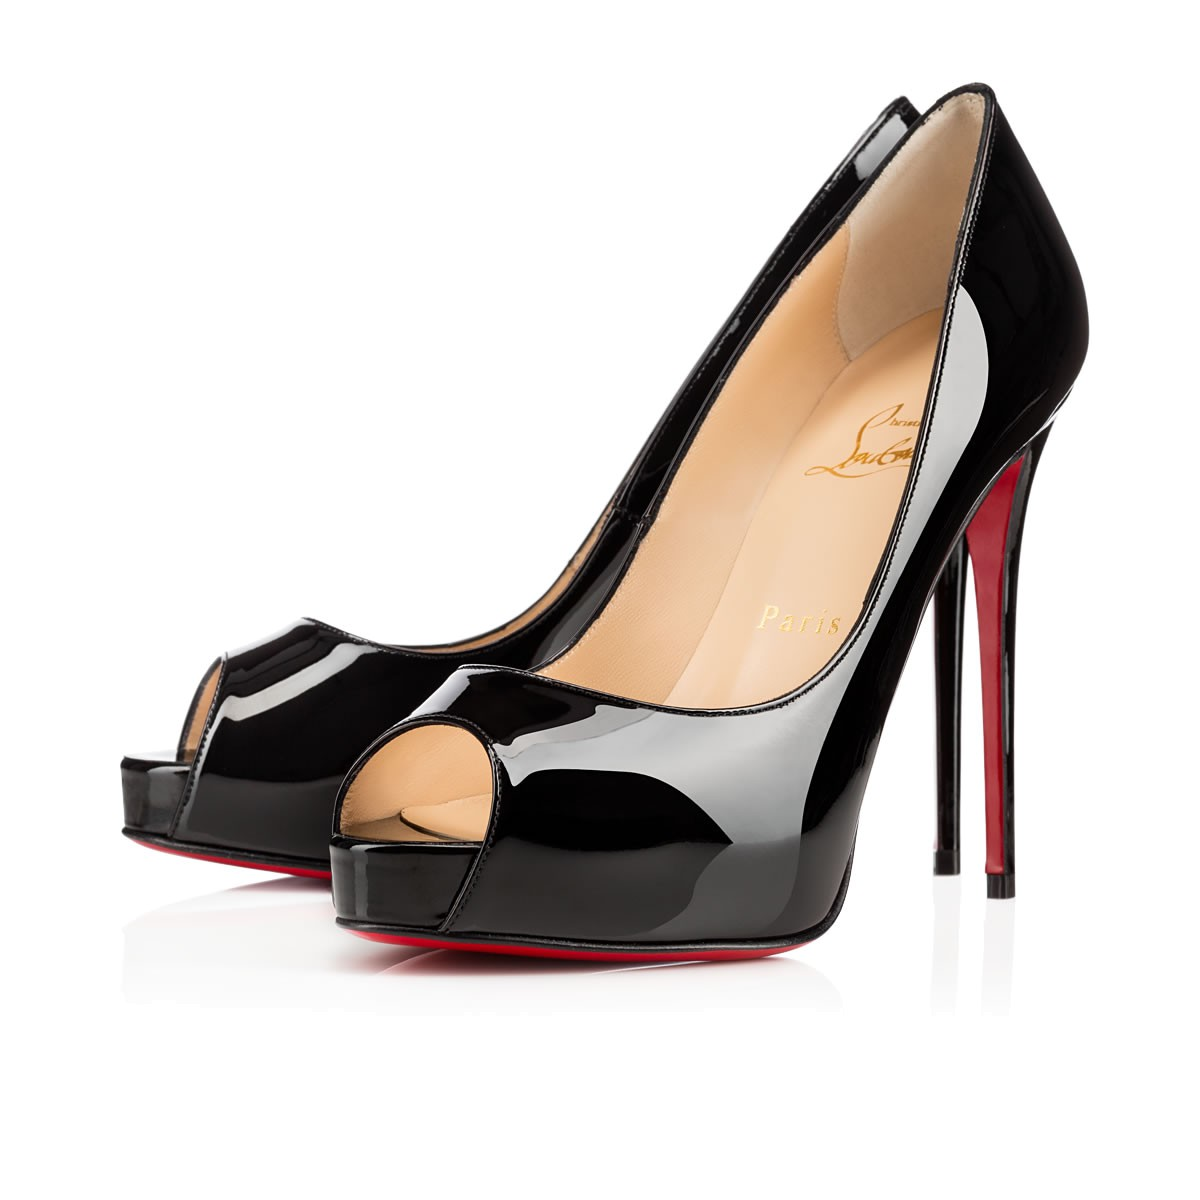 meilleur authentique b97da 7ca7b New Very Prive 120 Black Patent Leather - Women Shoes - Christian Louboutin